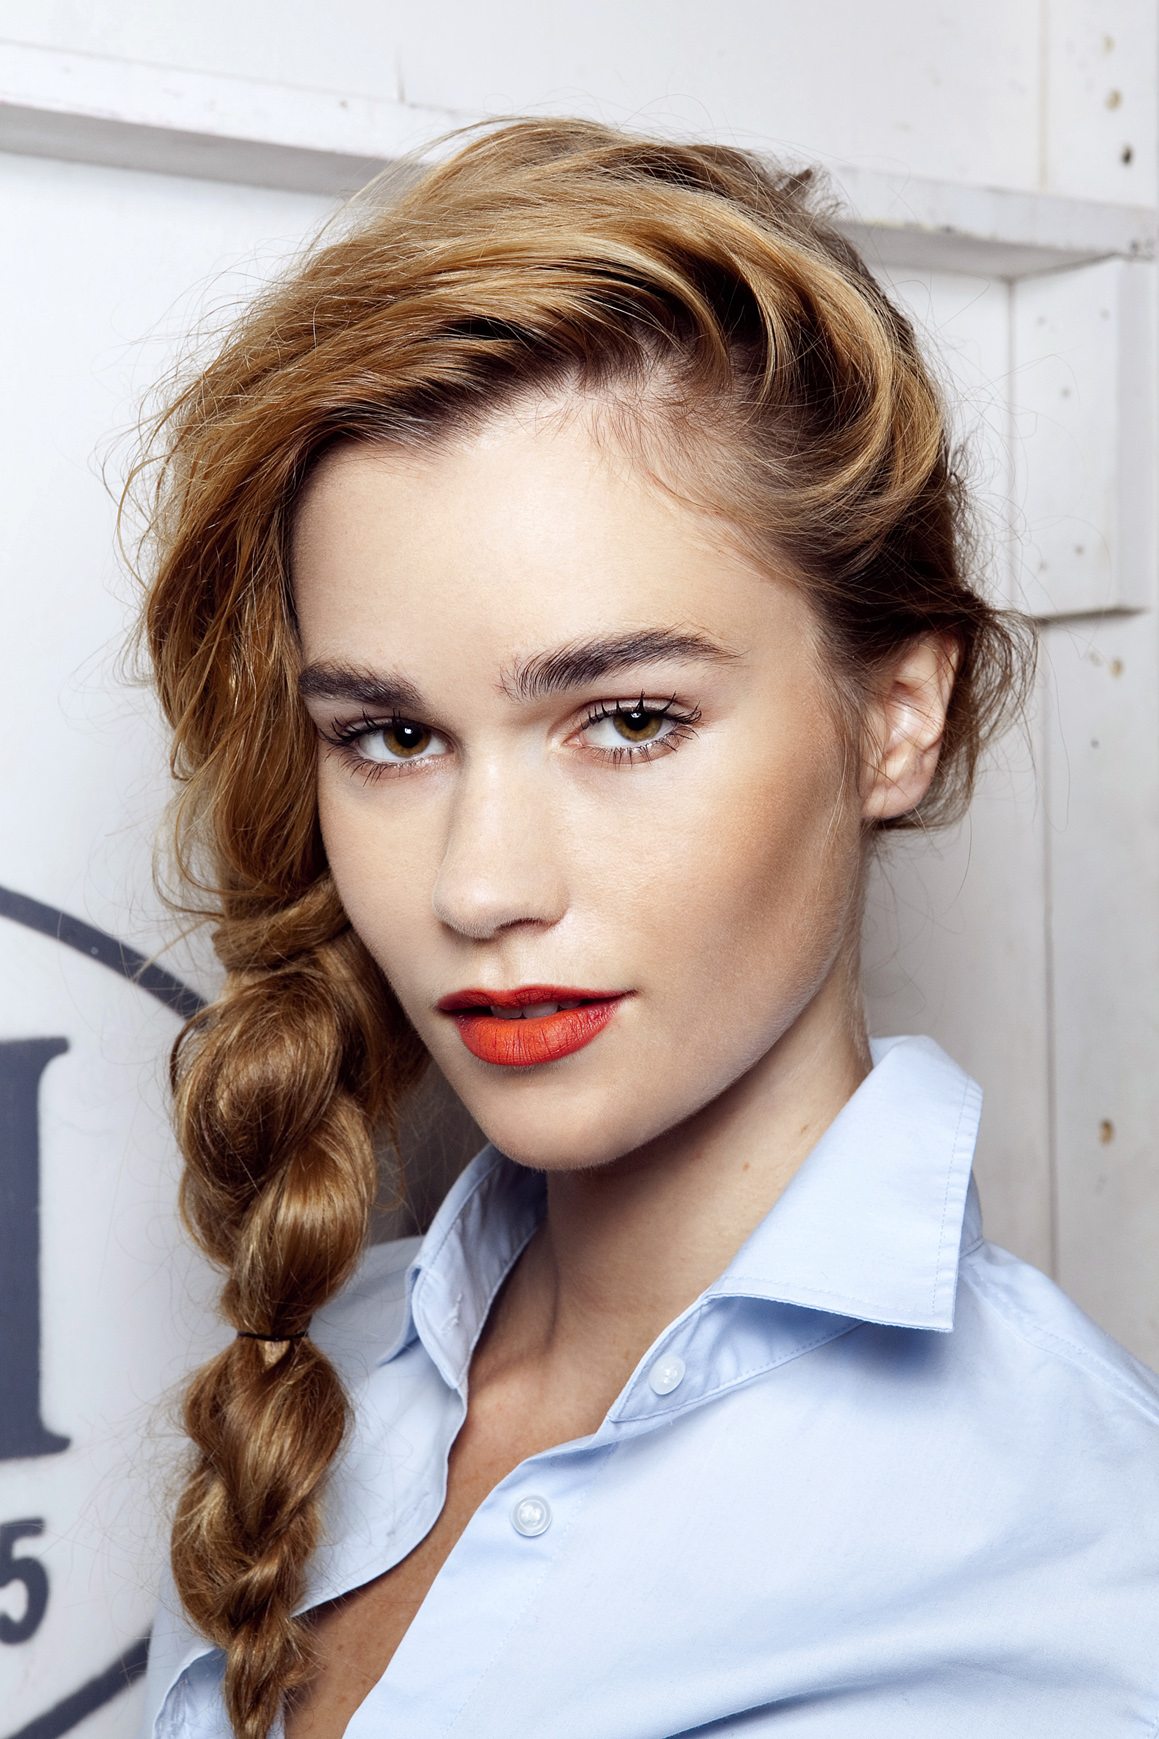 girl with side braid